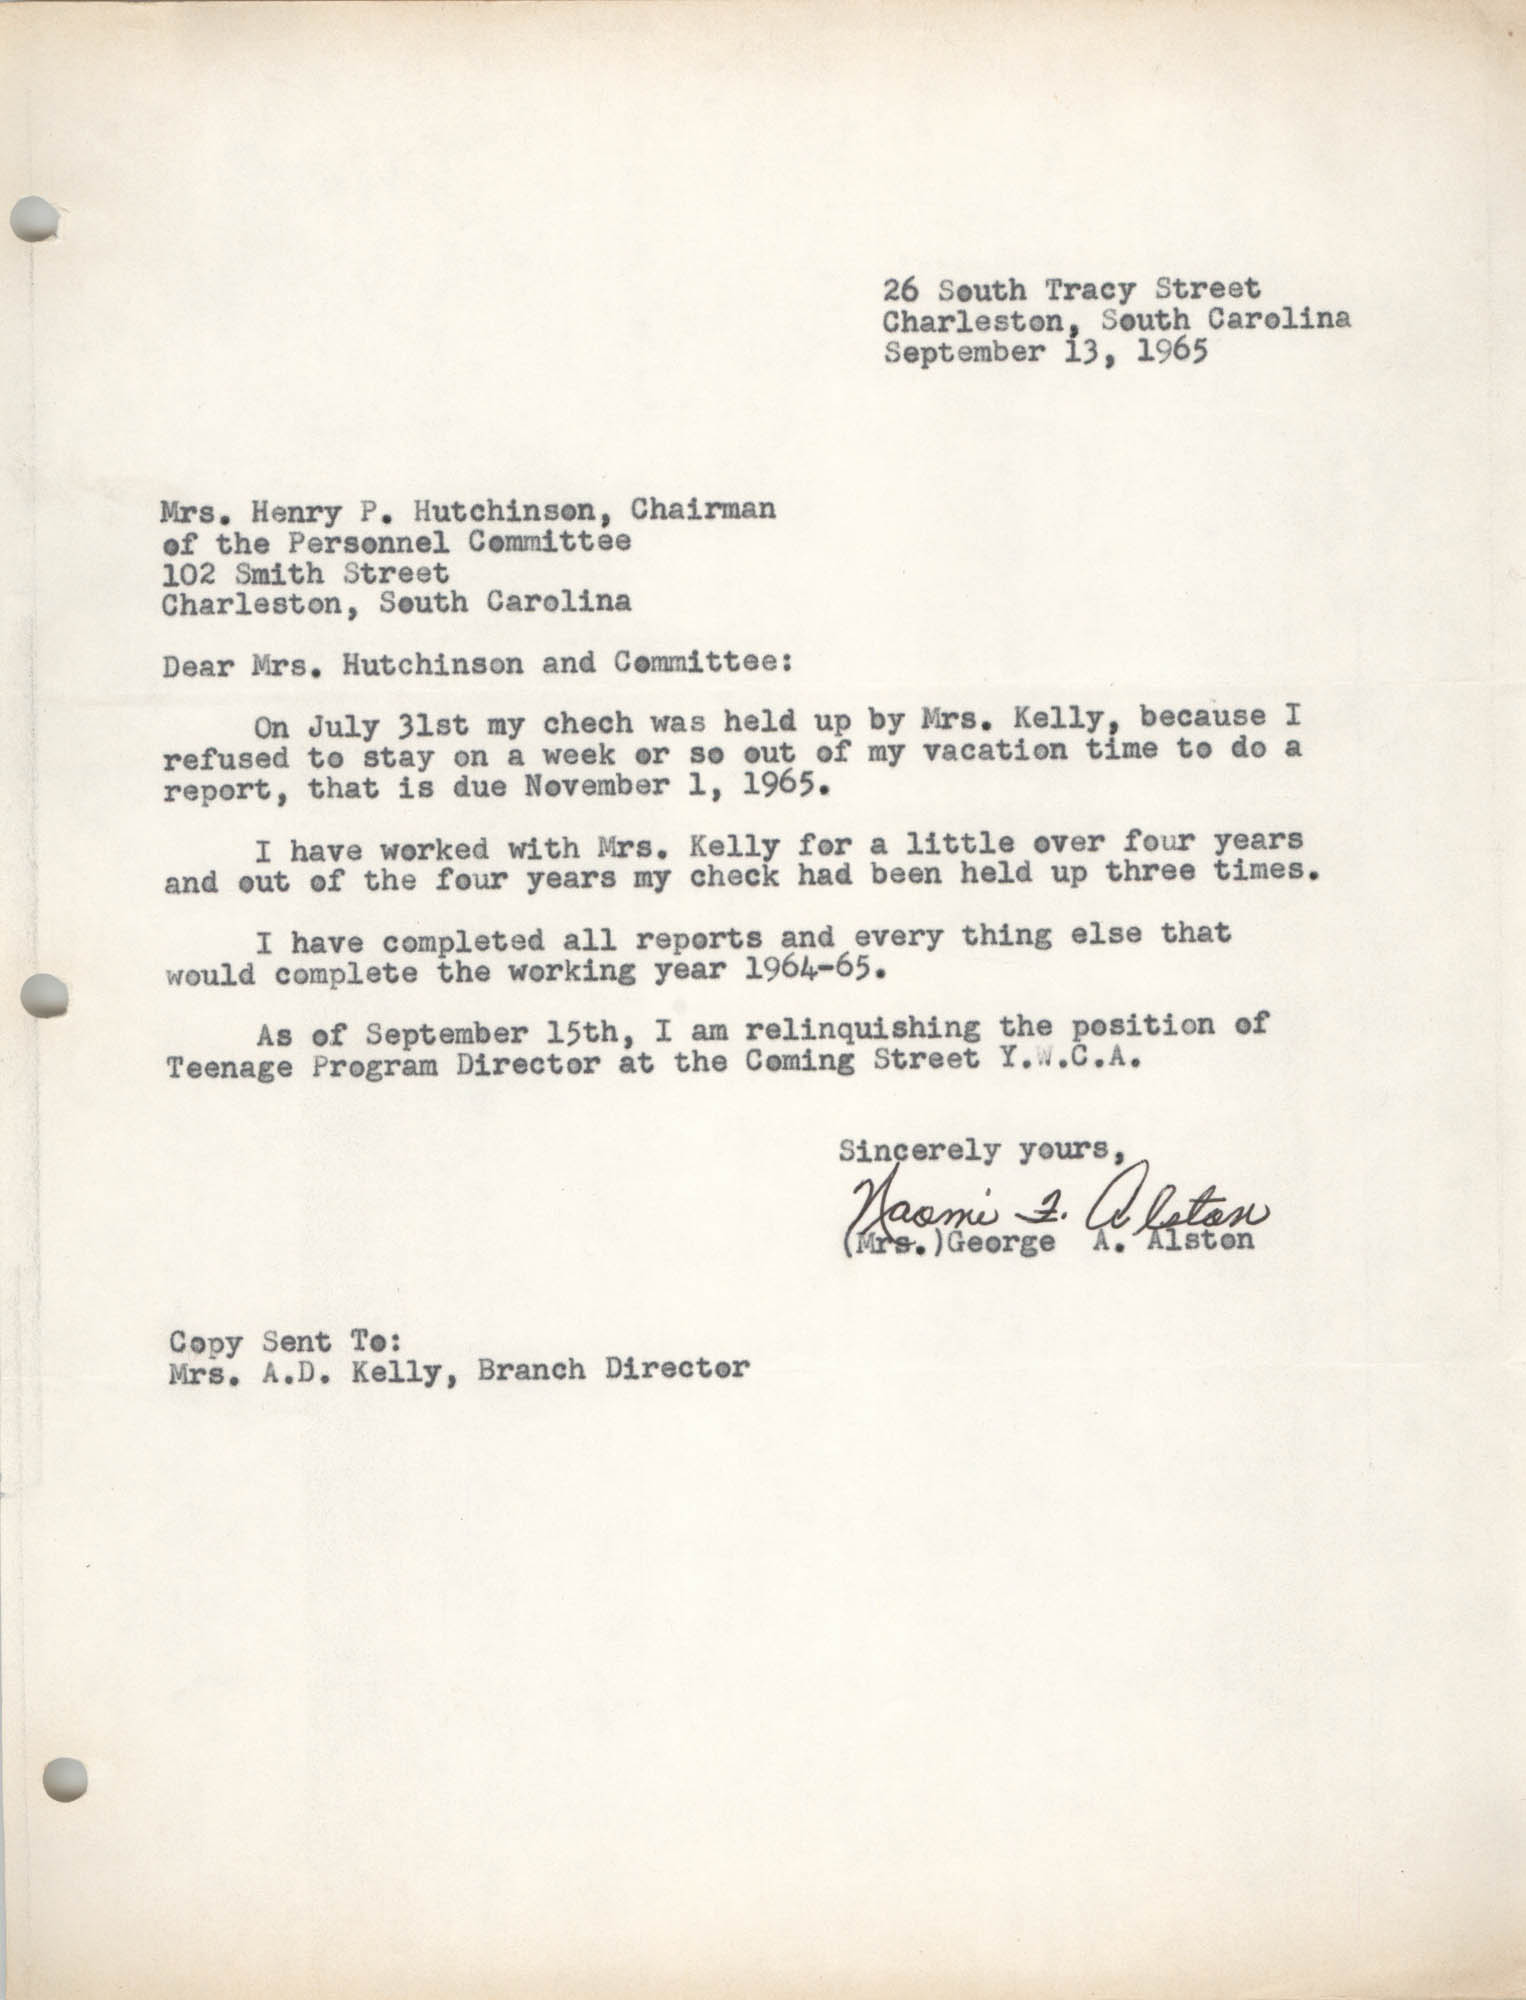 Letter from Naomi L. Alston to Mrs. Henry P. Hutchinson, September 13, 1965